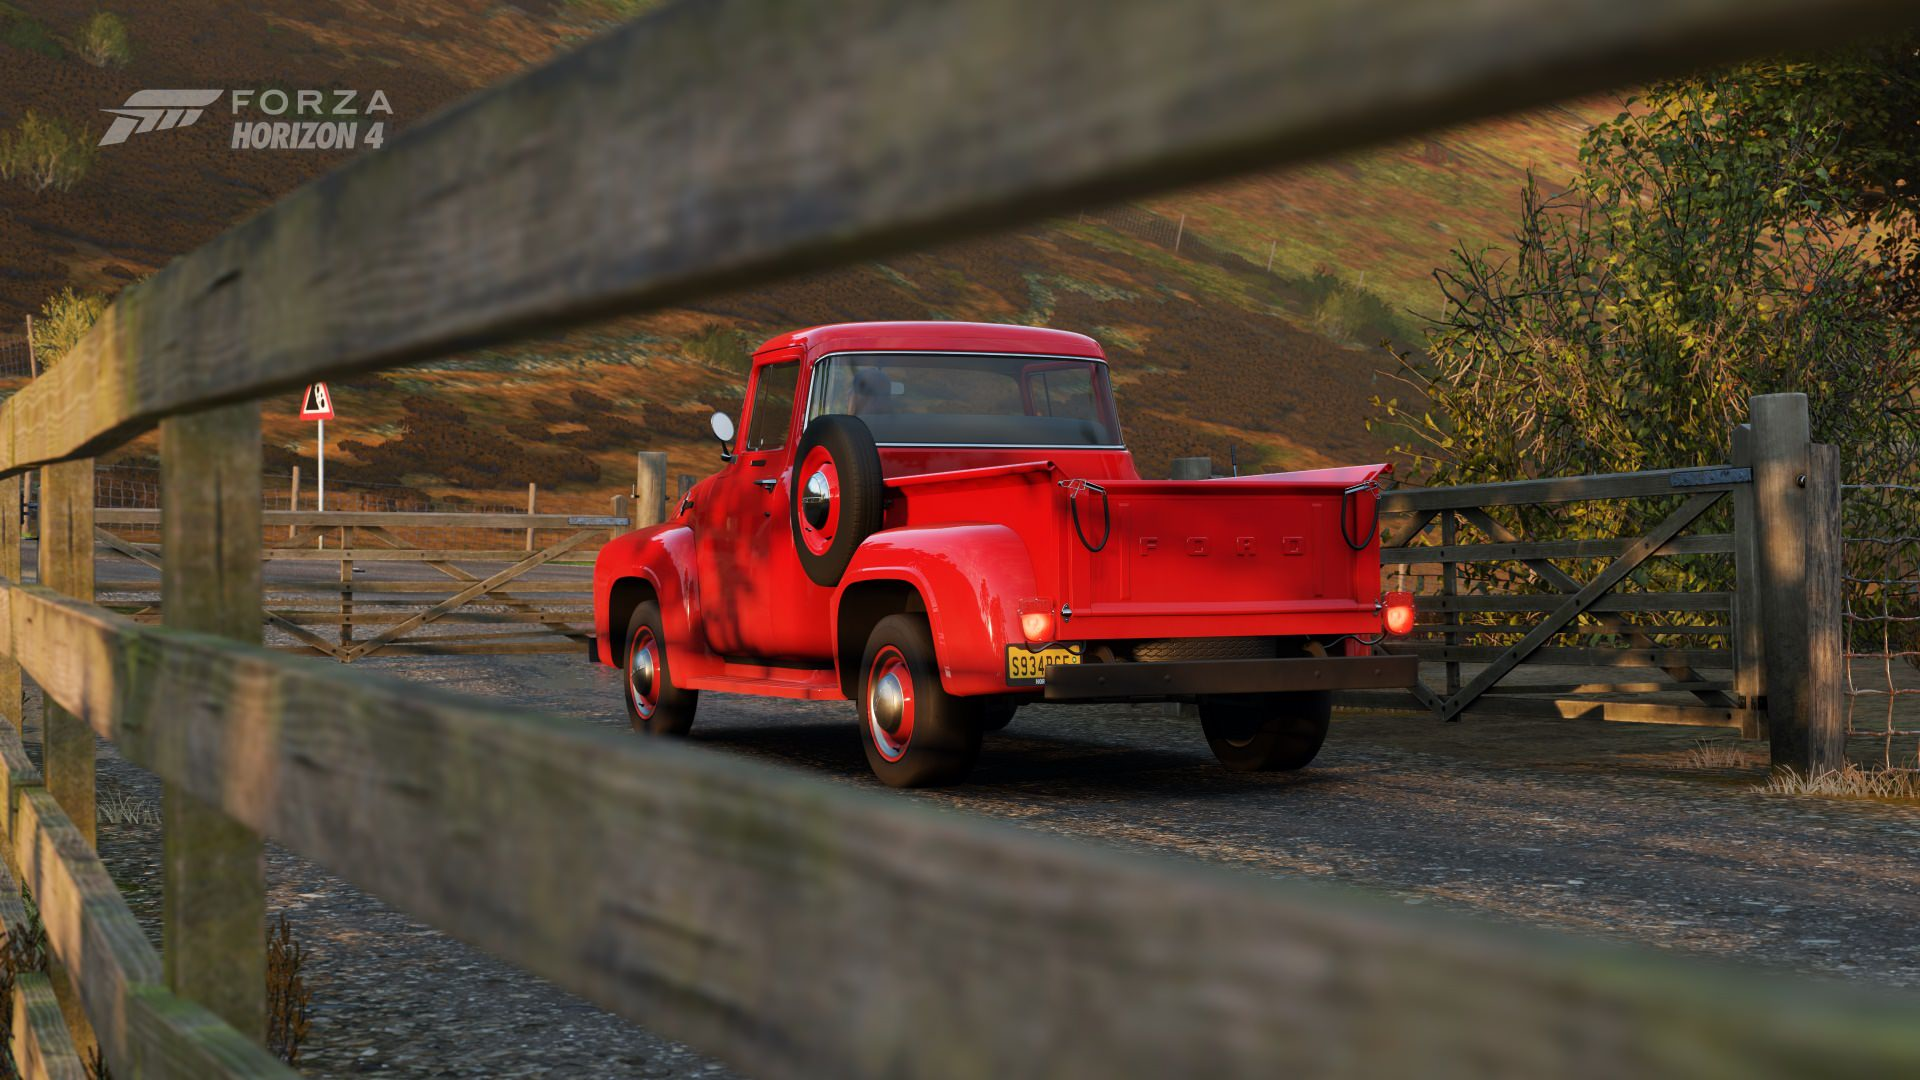 Wheeling and Dealing: How to Master the Forza Horizon 4